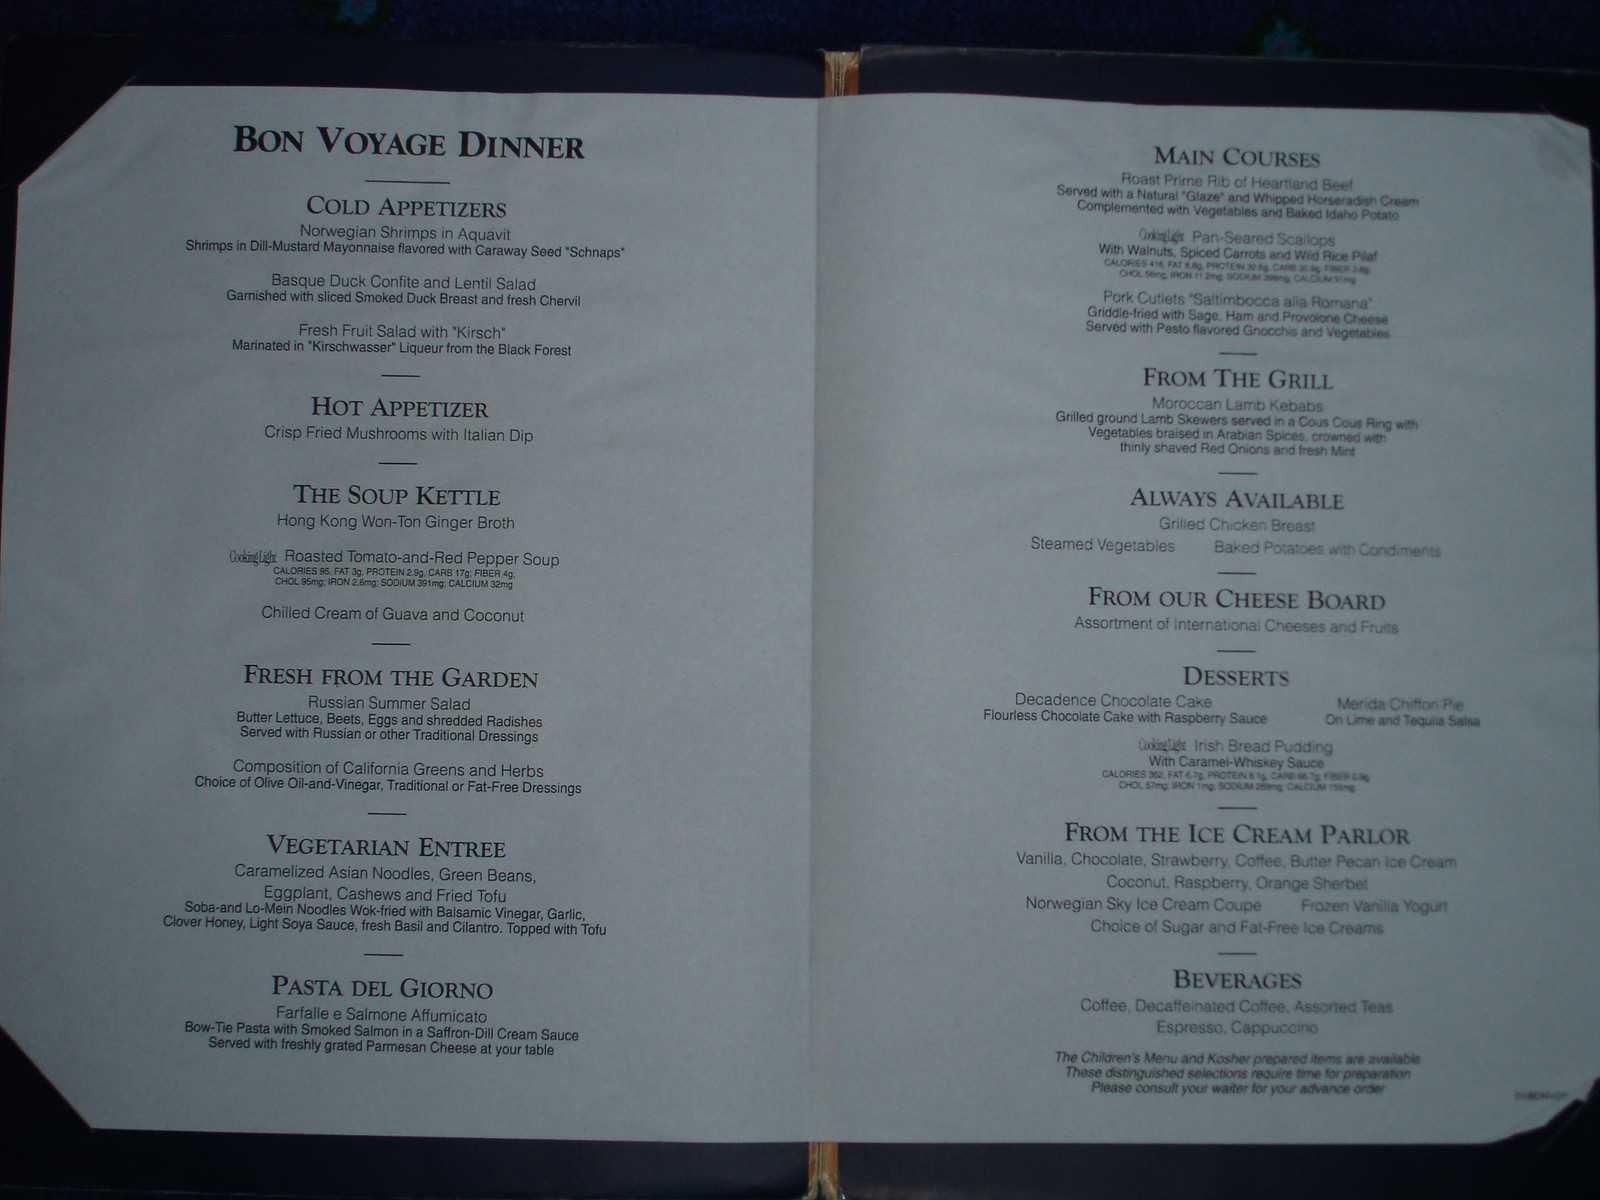 On the seas ncl dawn 2005 menus and ncl freestyle dailys for W austin in room dining menu